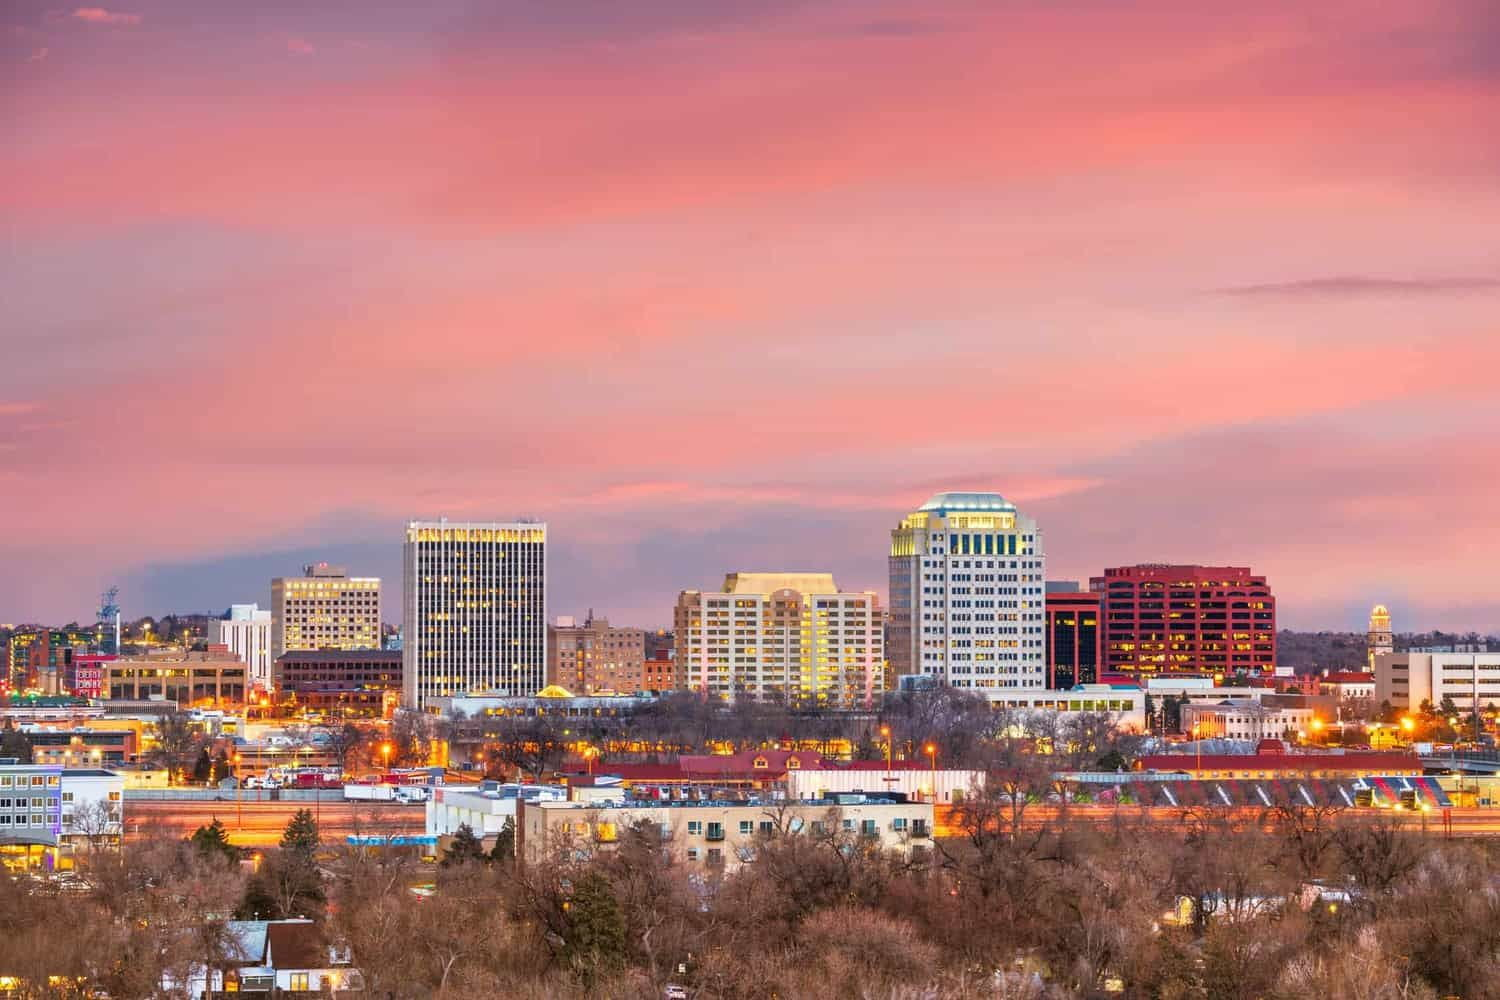 Colorado Springs city skyline & mountains at sunset.